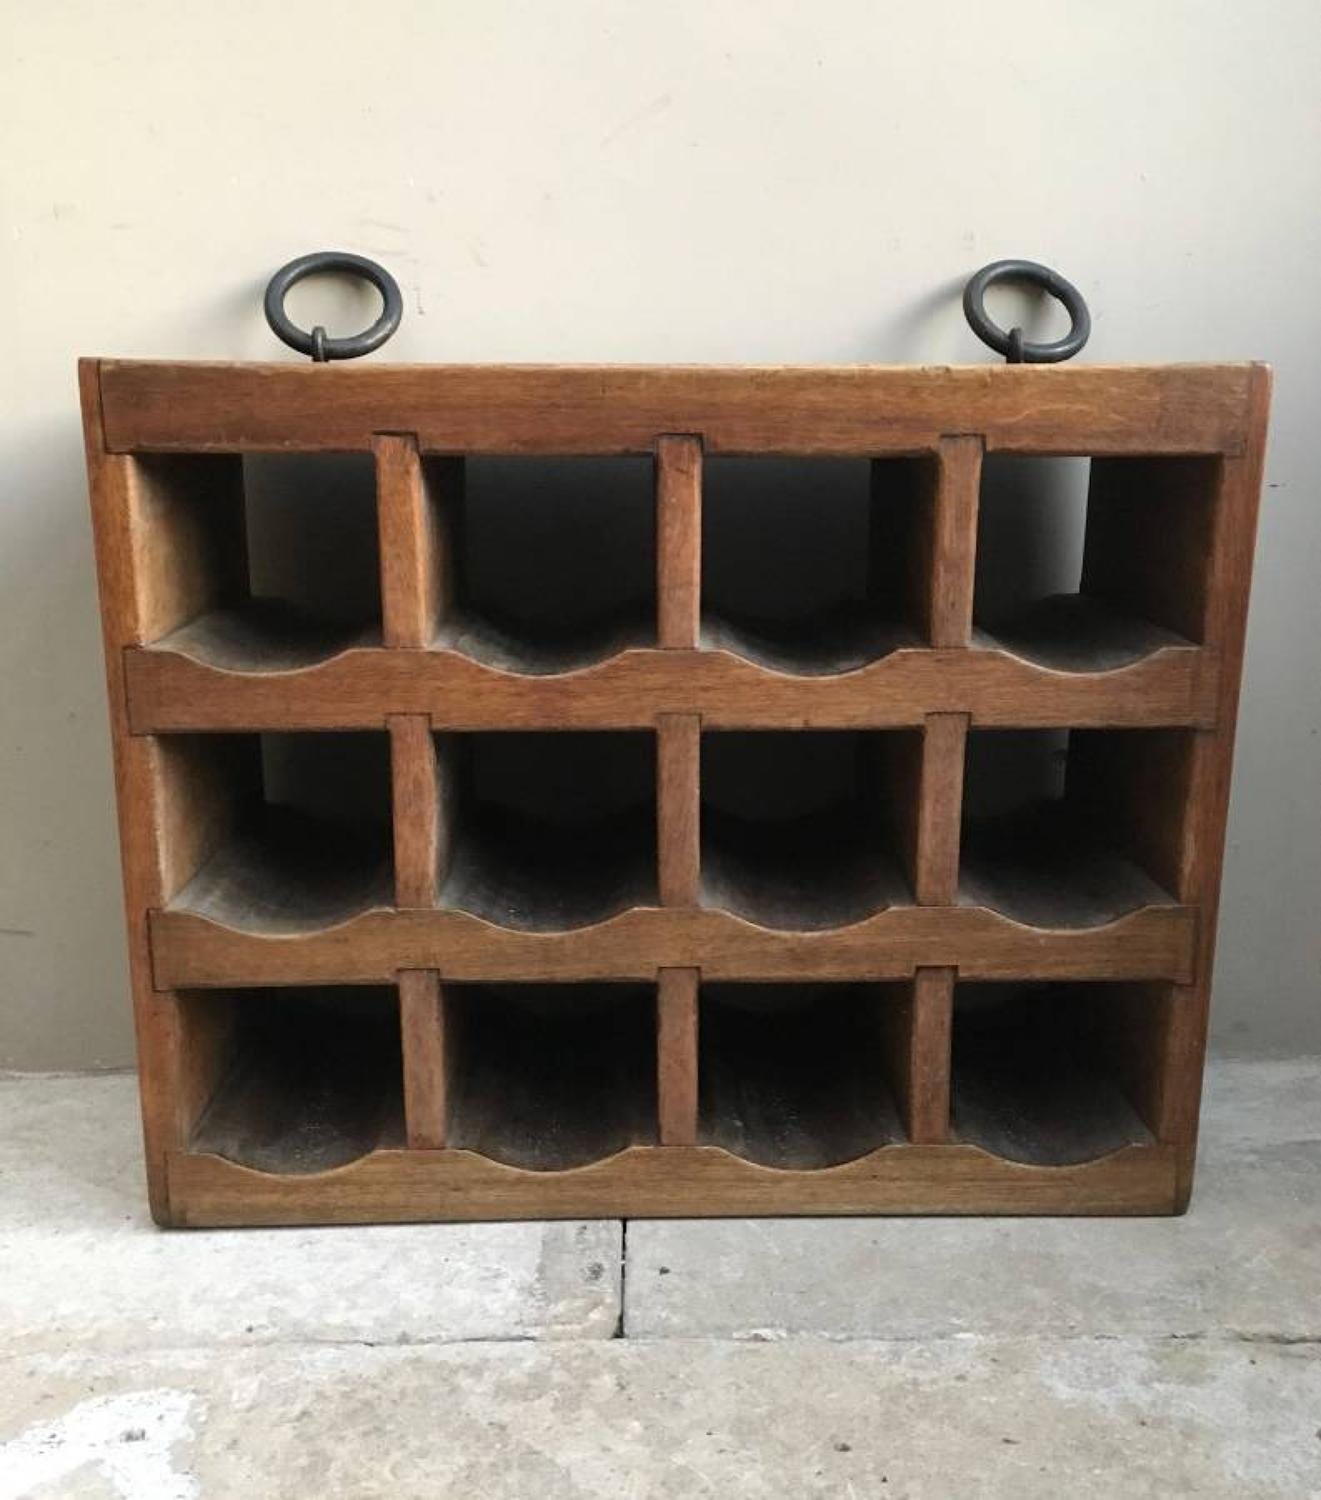 Quality Early 20th Century Mahogany Wine Rack for 12 Bottles